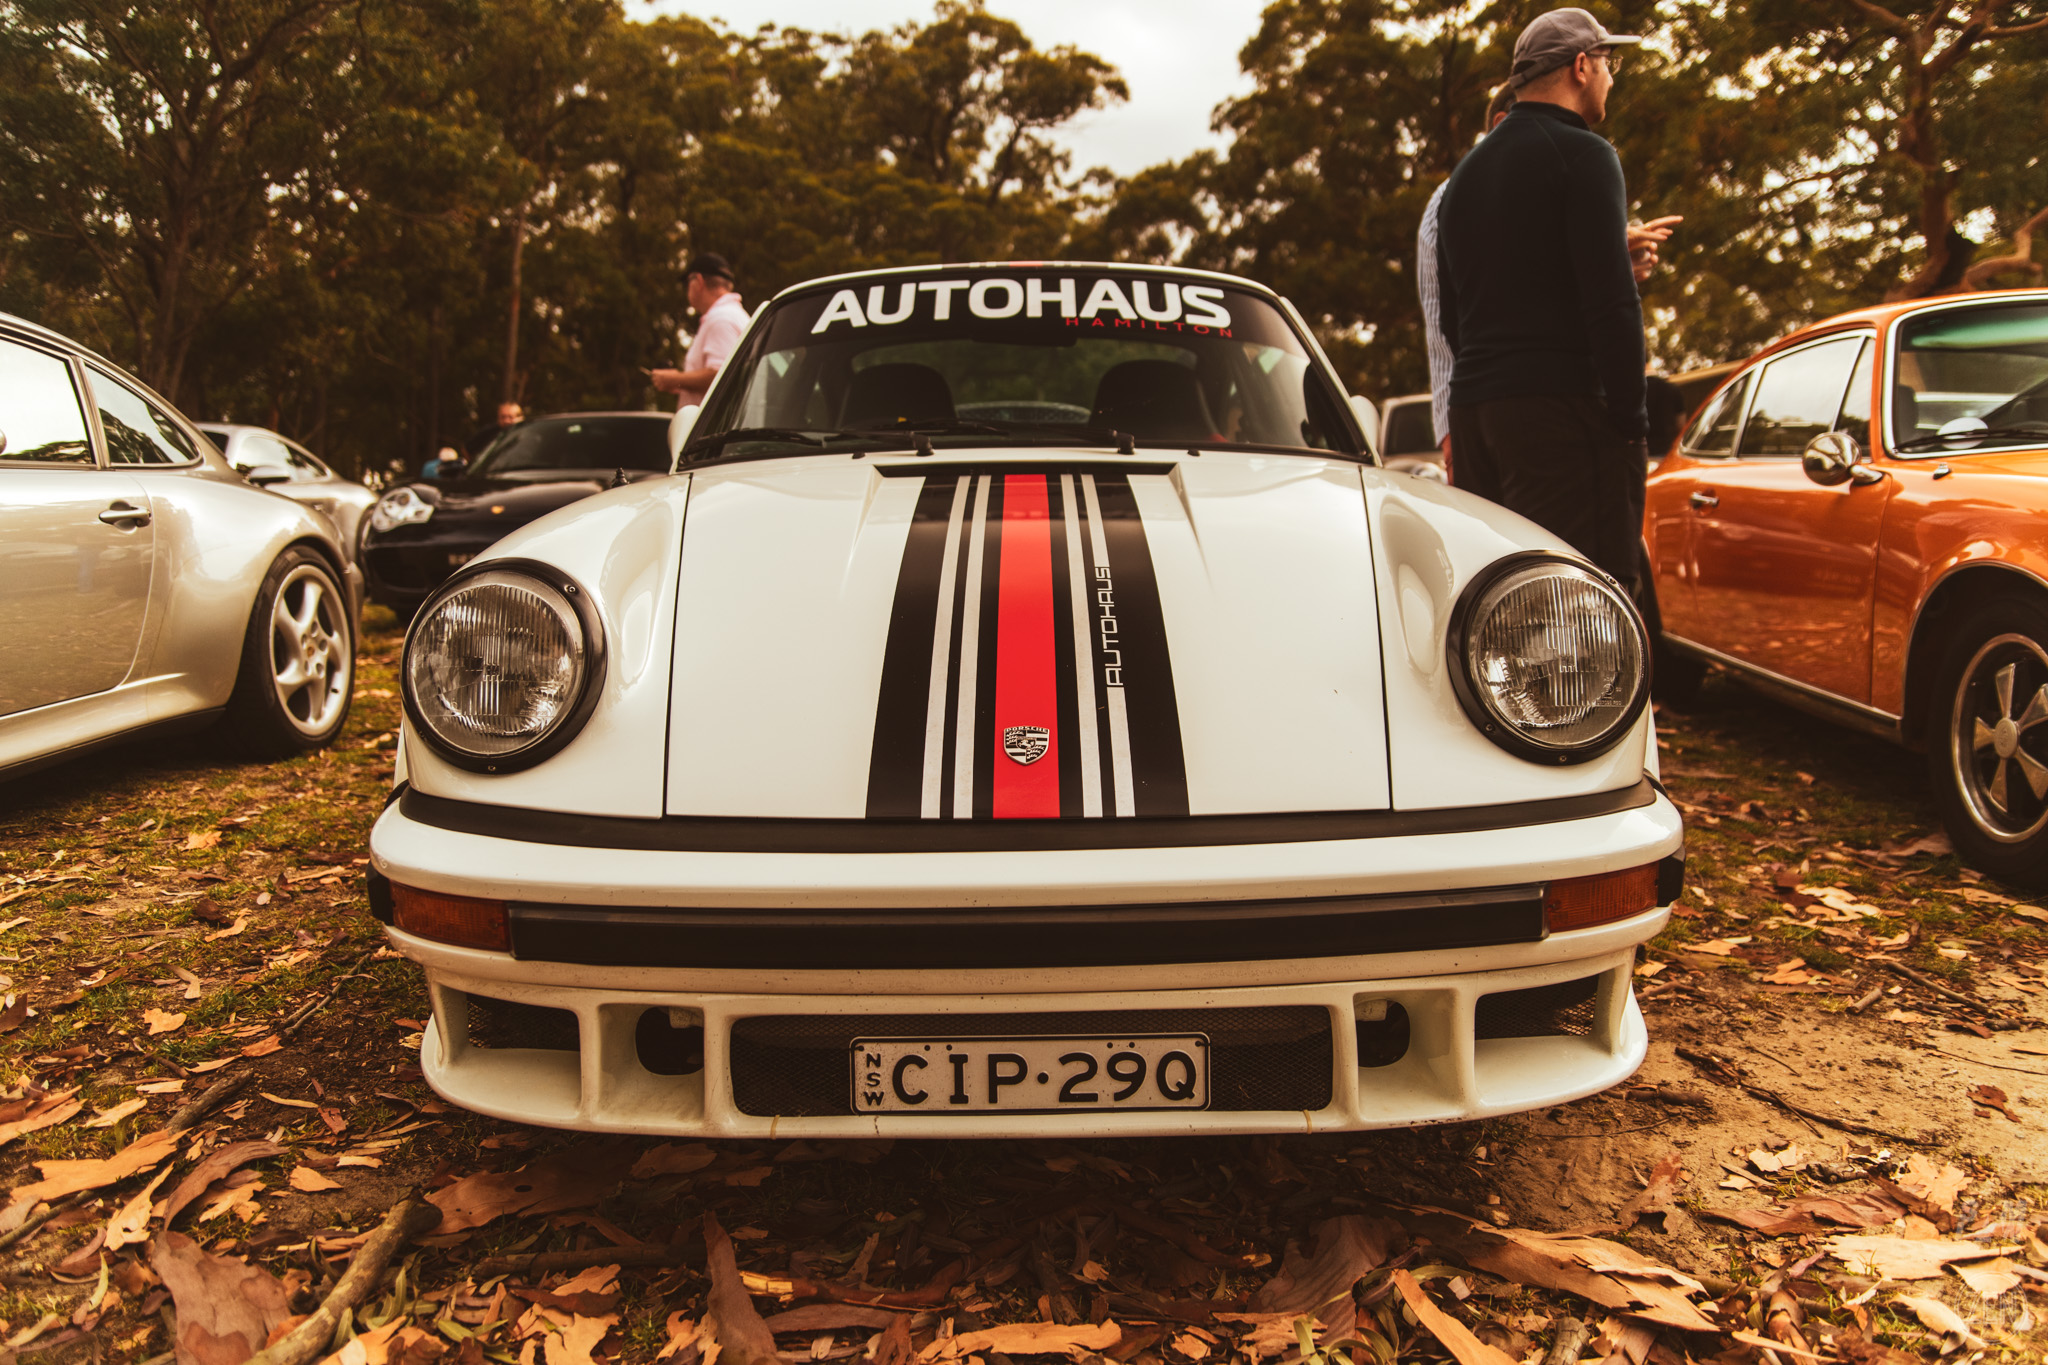 2019-12-08 - Porsches & Coffee 022